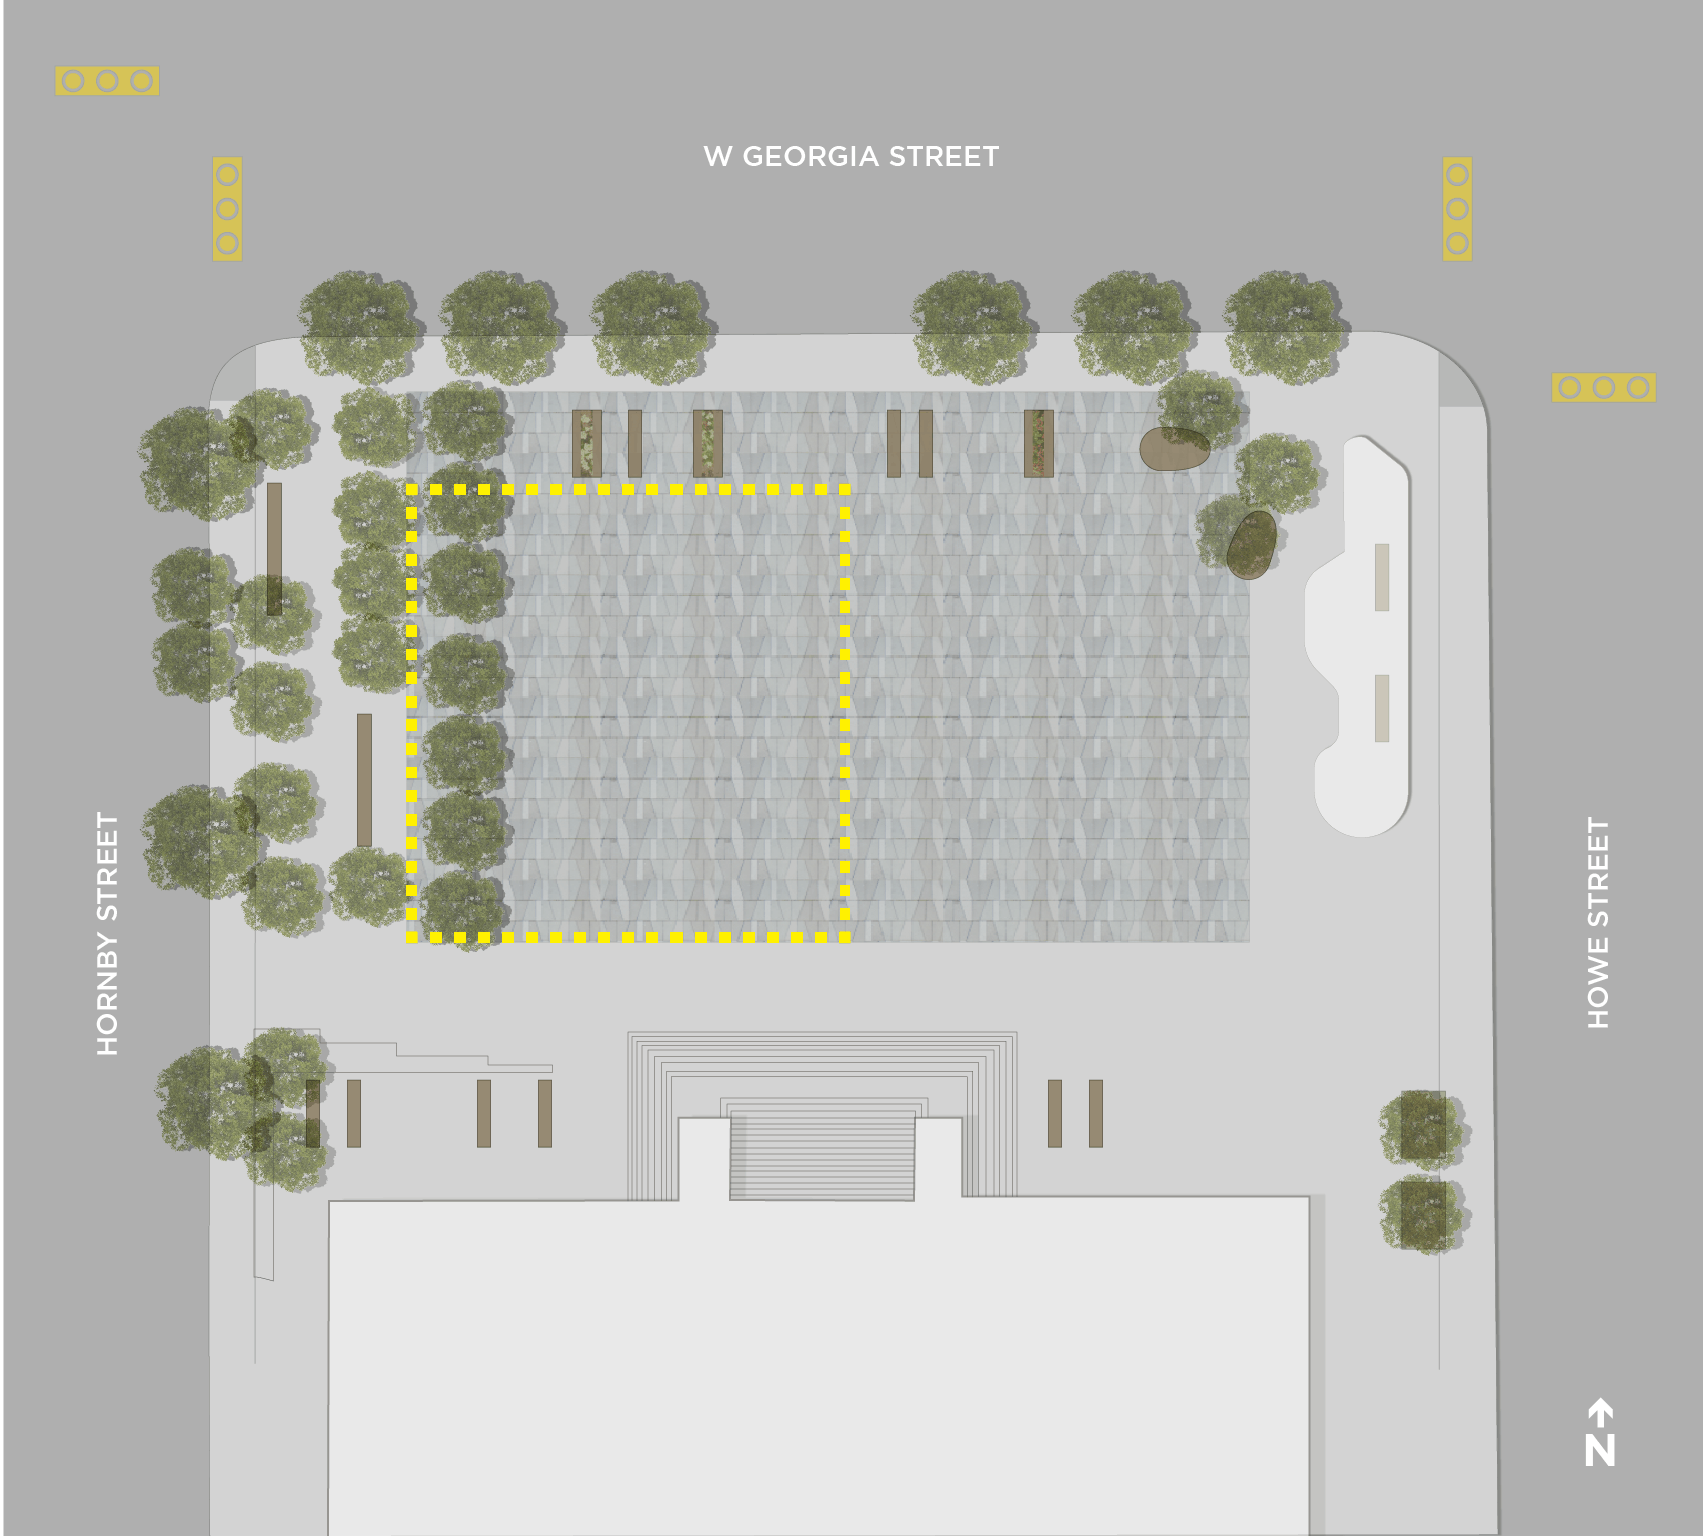 Map of šxʷƛ̓ənəq Xwtl'e7énk Square (Vancouver Art Gallery – North Plaza) designated drinking area.